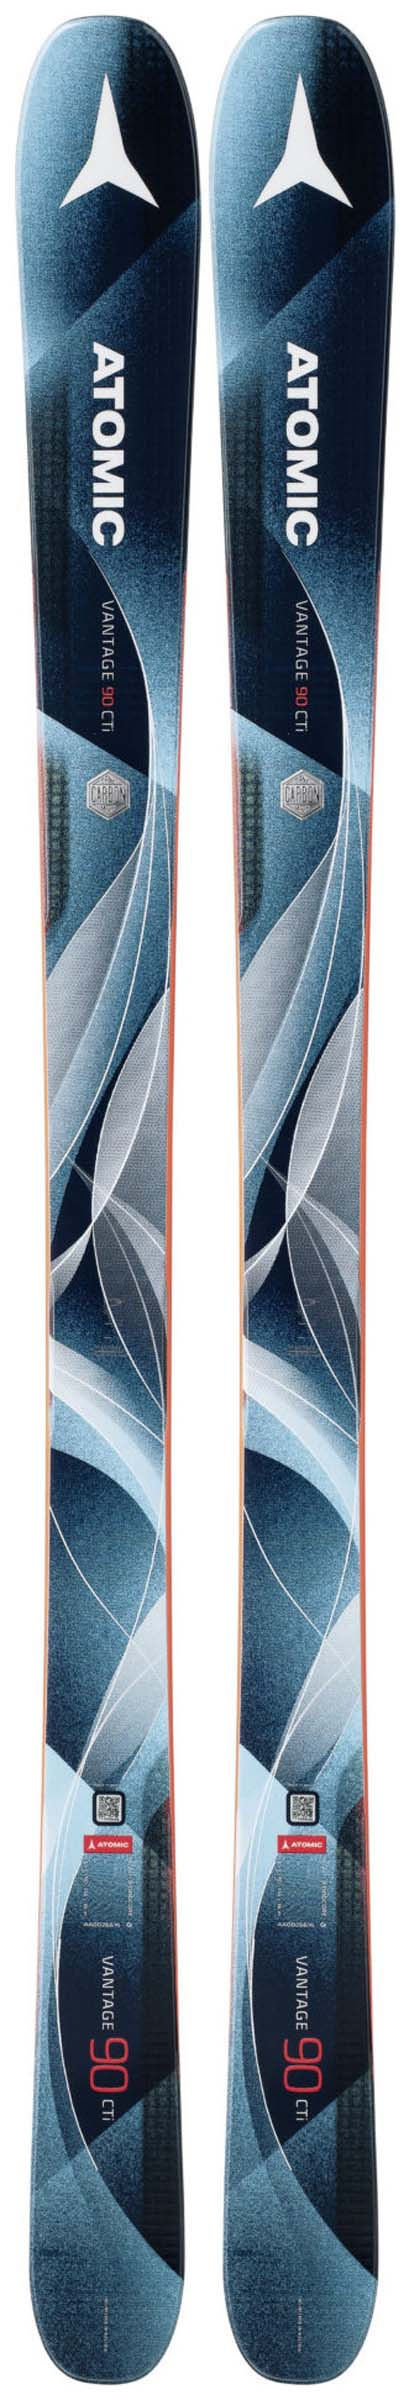 Atomic 2018 Vantage 90 CTI WMN Skis (Without Bindings / Flat) NEW !! 153,161,169cm